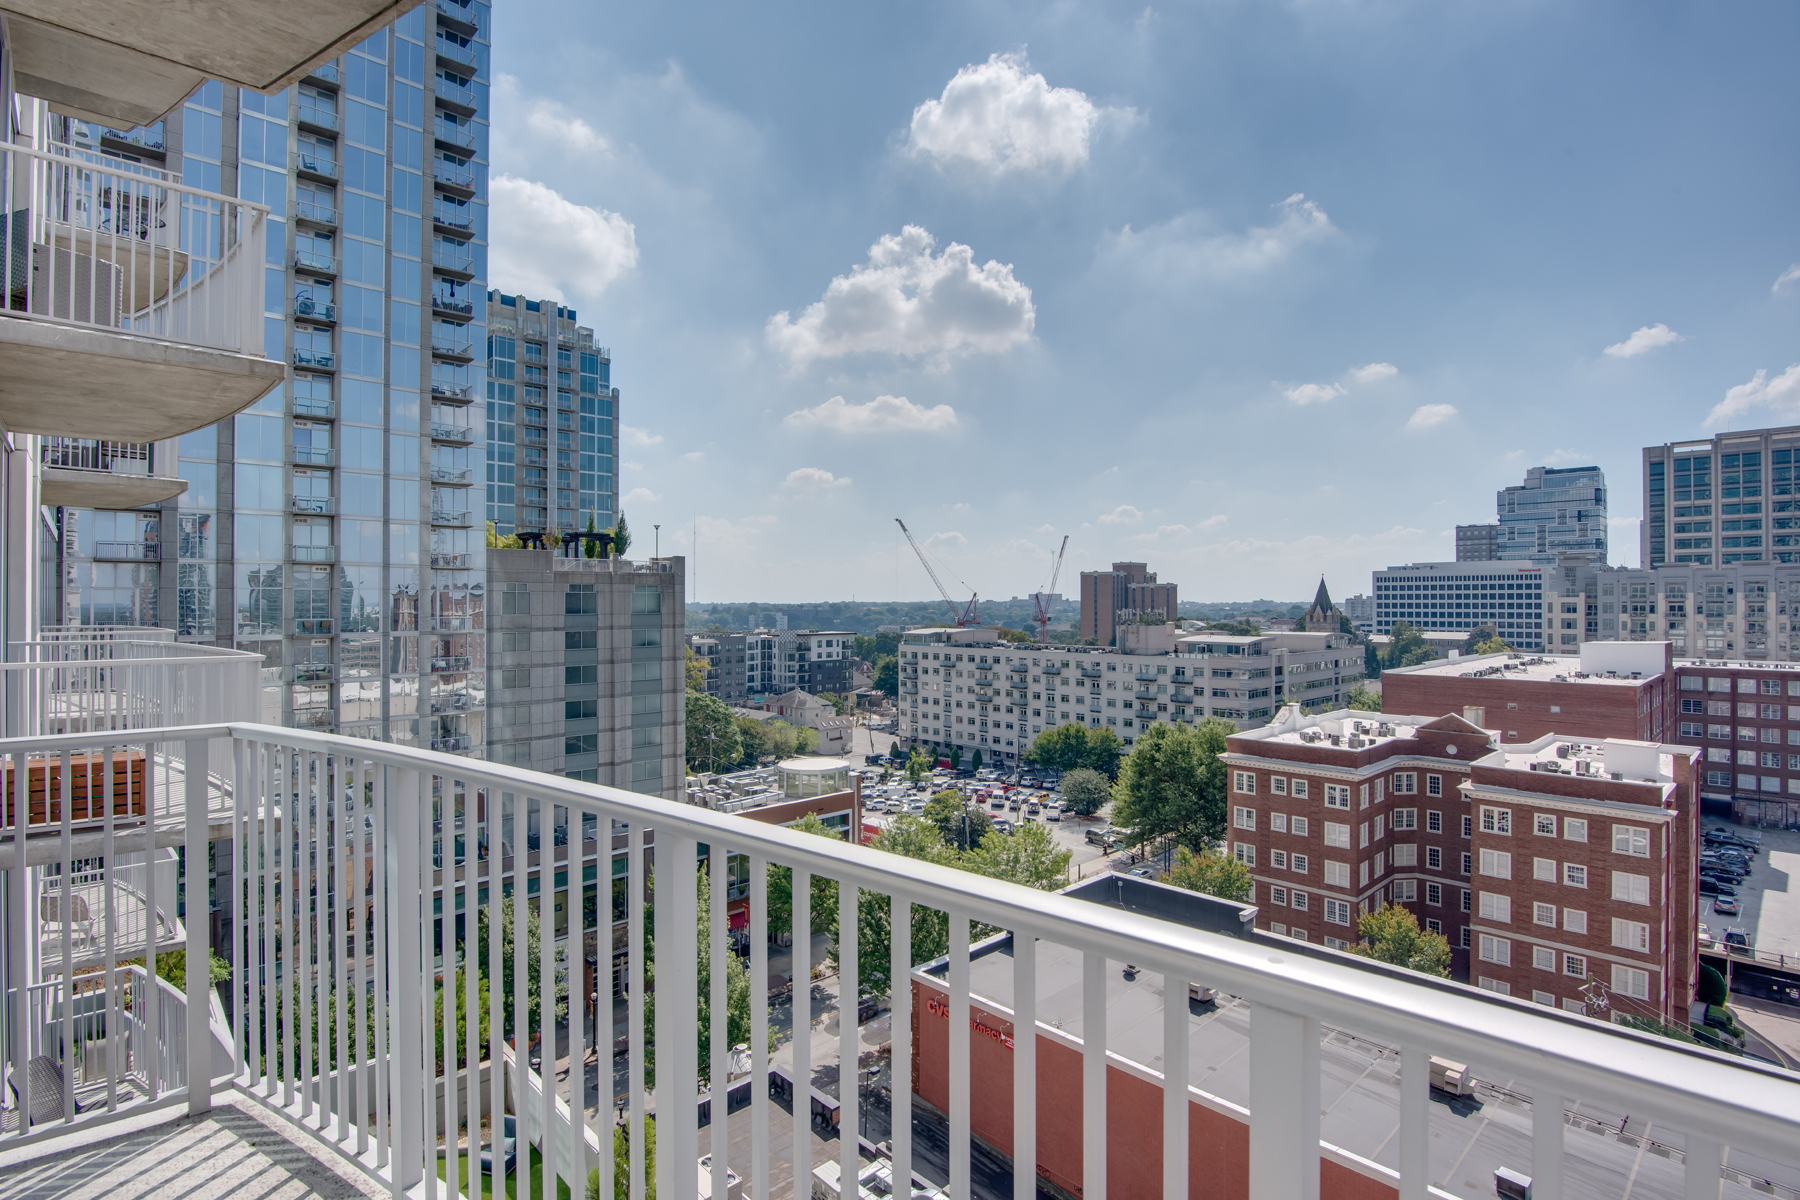 Additional photo for property listing at Stylish One Bedroom Midtown Condo With Amazing View 860 Peachtree Street NE No. 1008 Atlanta, Georgia 30308 United States